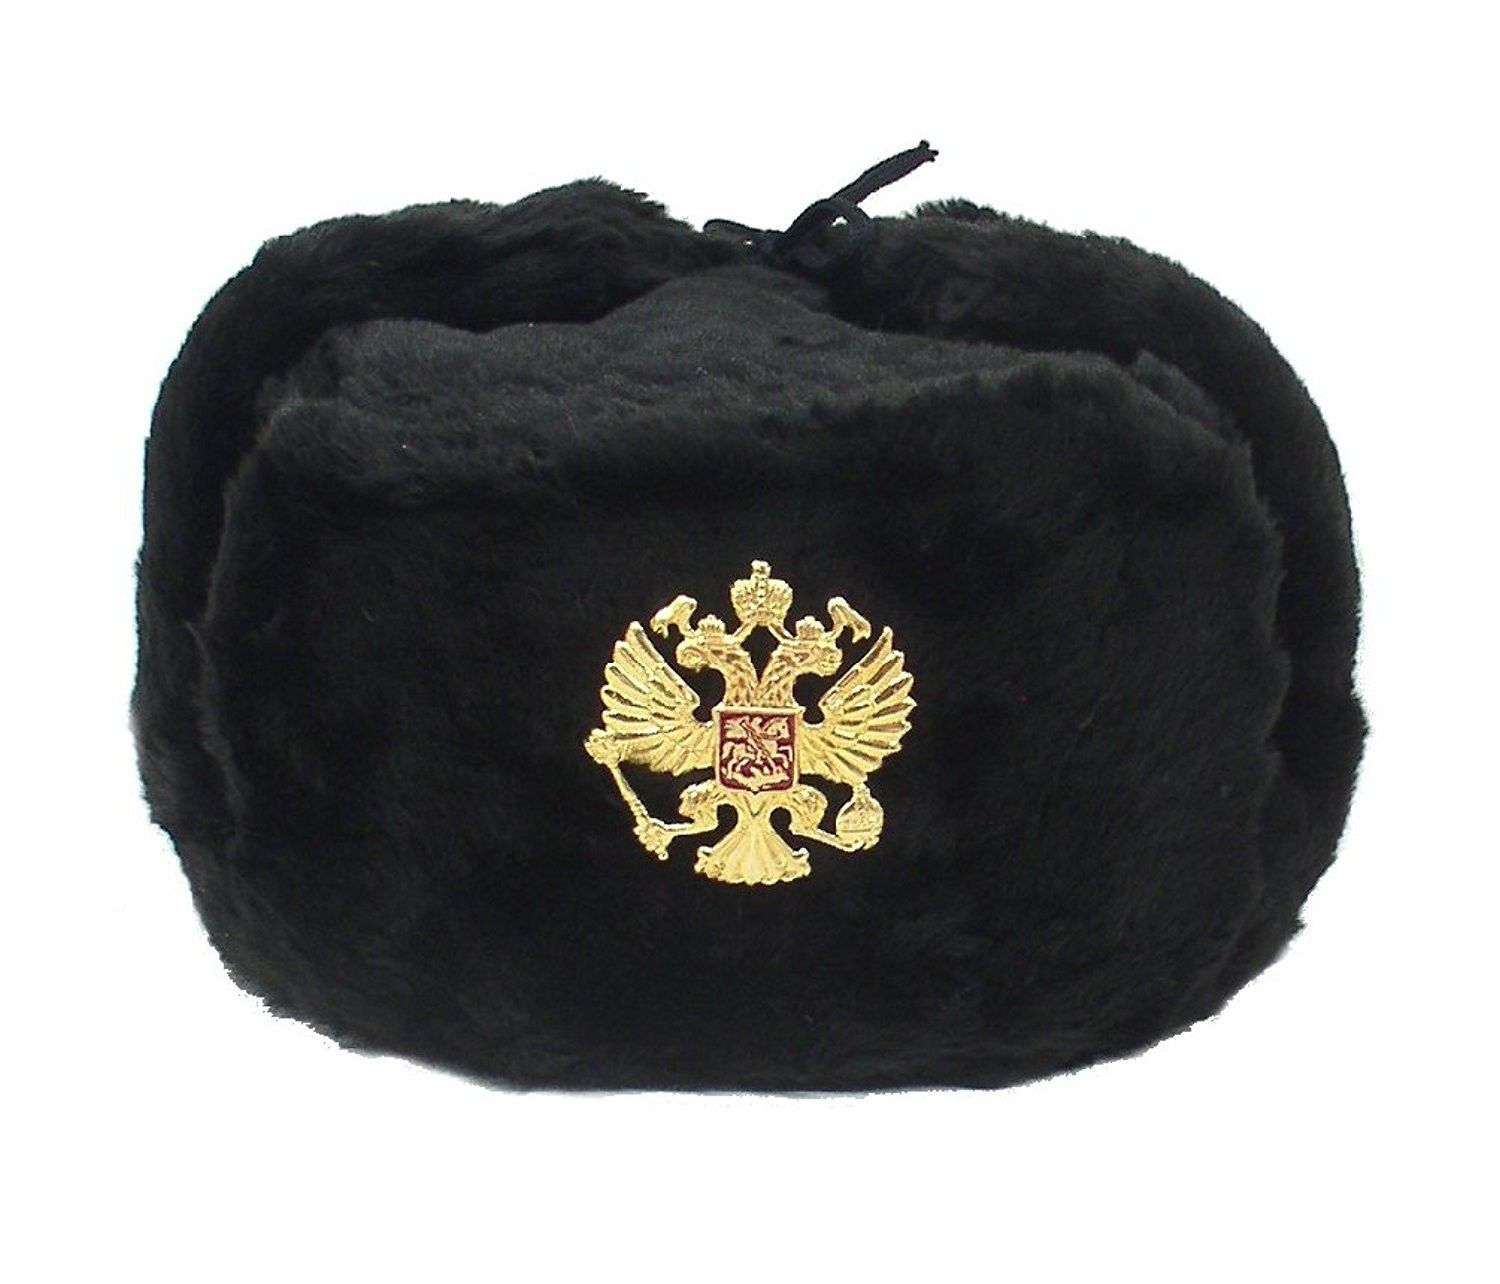 0685430aaca Hat Russian Soviet Imperial Eagle Black KGB  Fur Military Cossack Ushanka   Size L - CE11BUFPZ1P - Hats   Caps